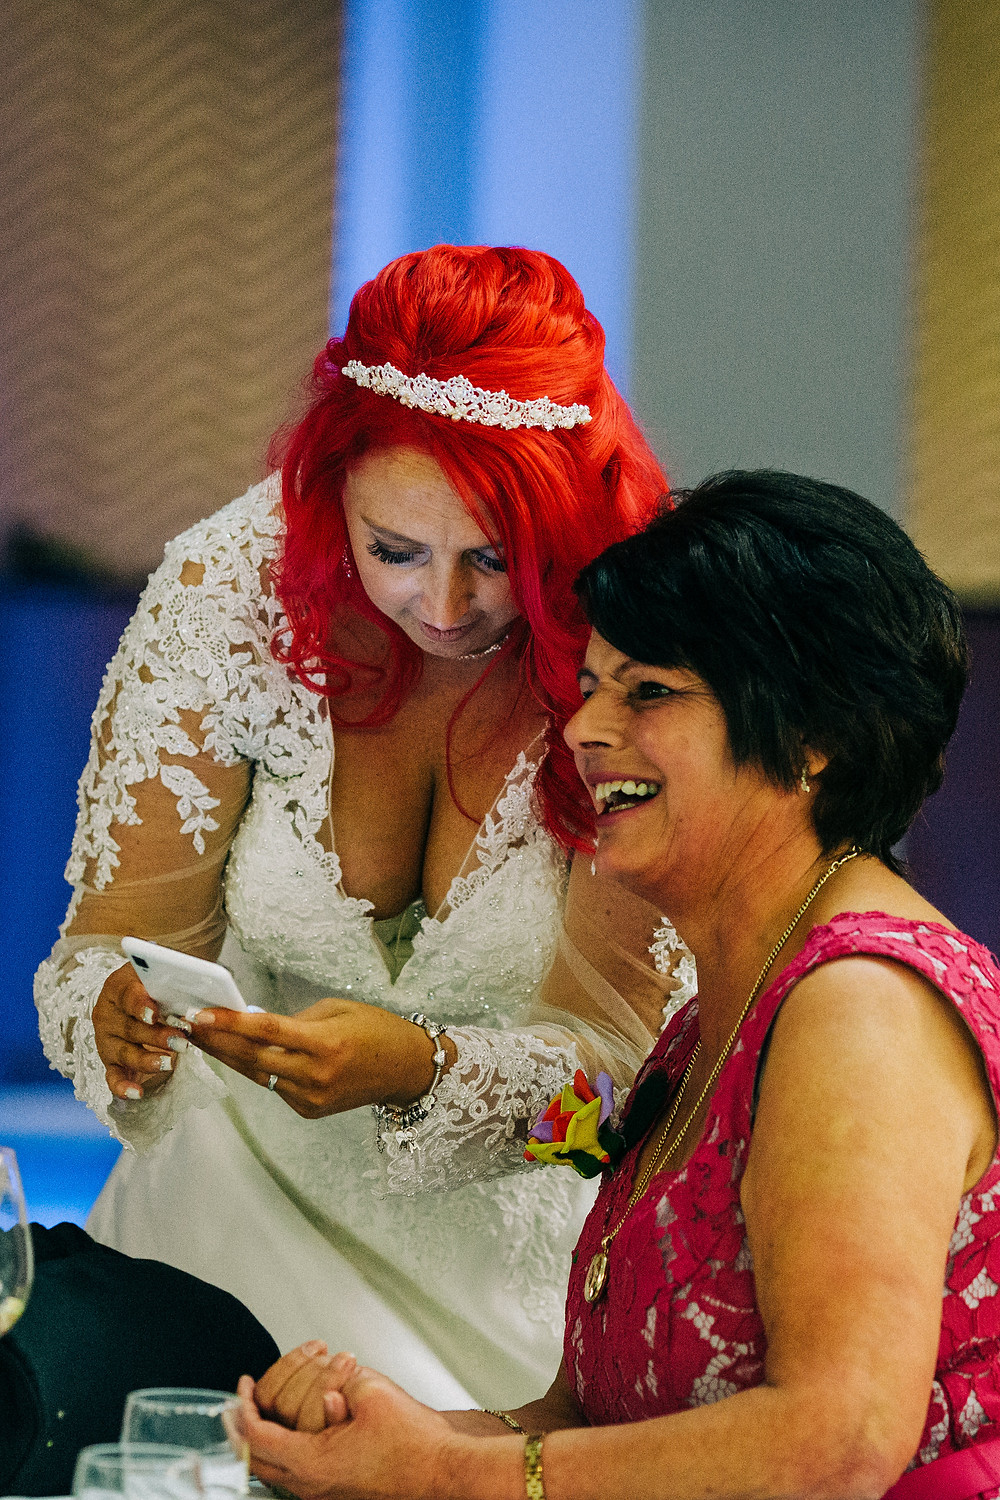 Colourful alternative wedding photography showing bride with family during reception at Holiday Inn Newcastle Jesmond